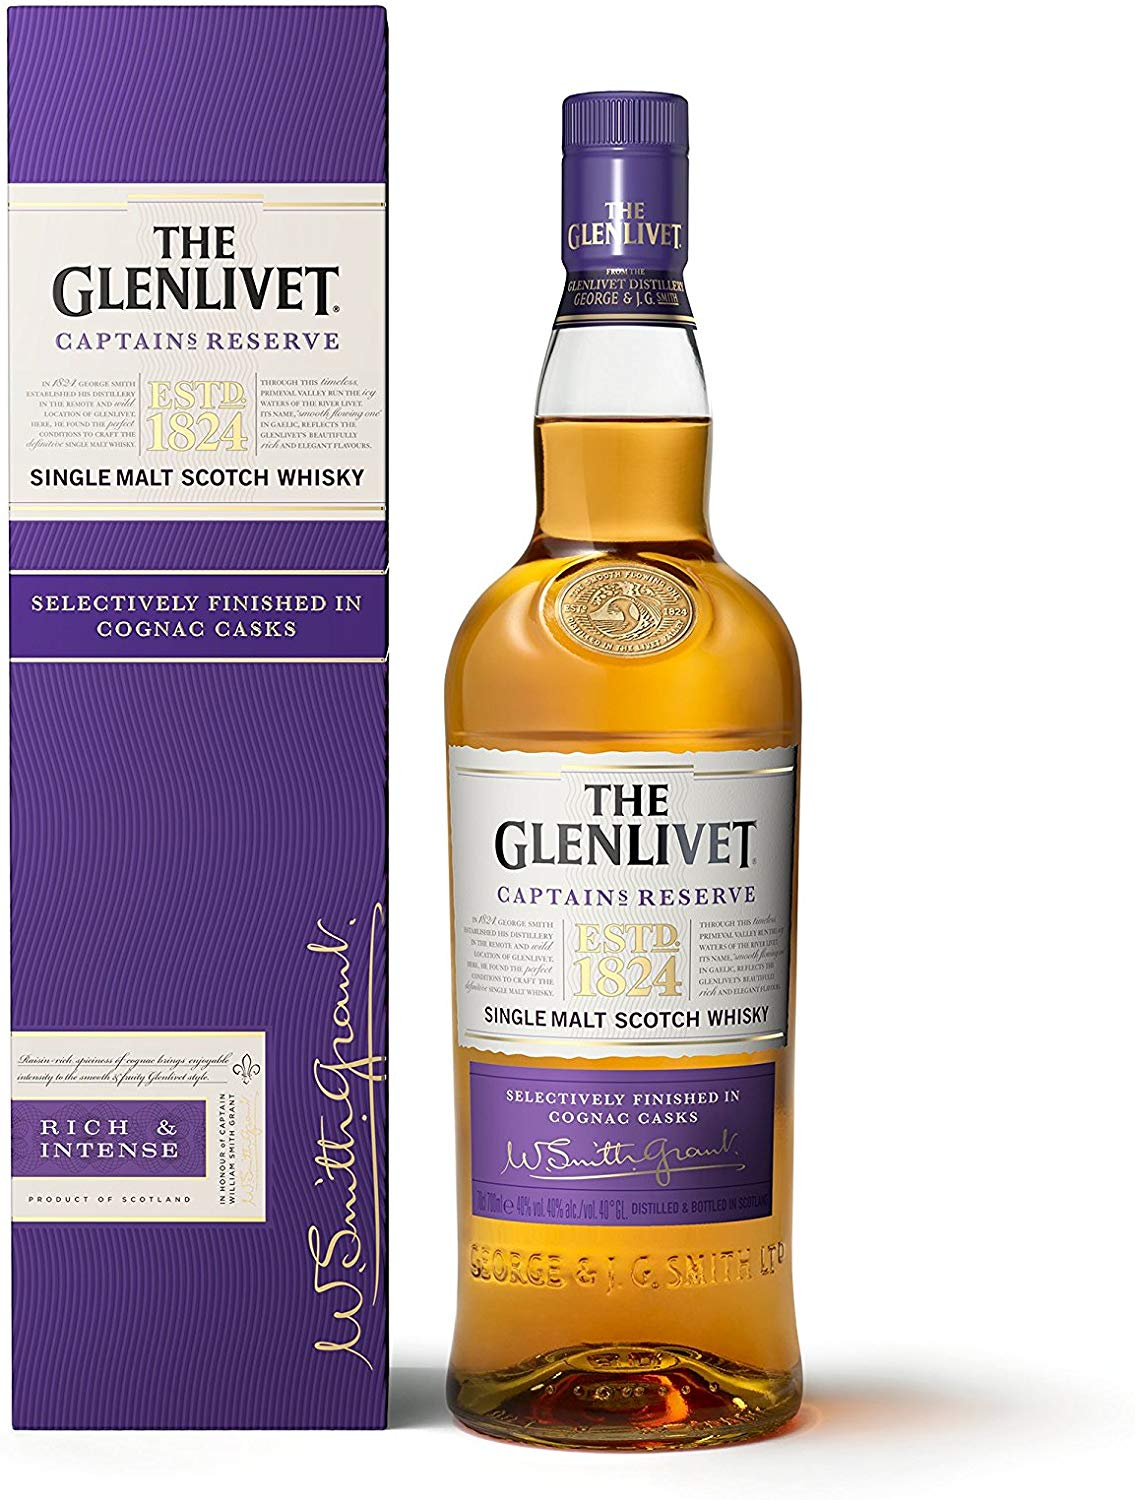 The Glenlivet Captain's Reserve Whisky, 70 cl for £31.5 on Amazon